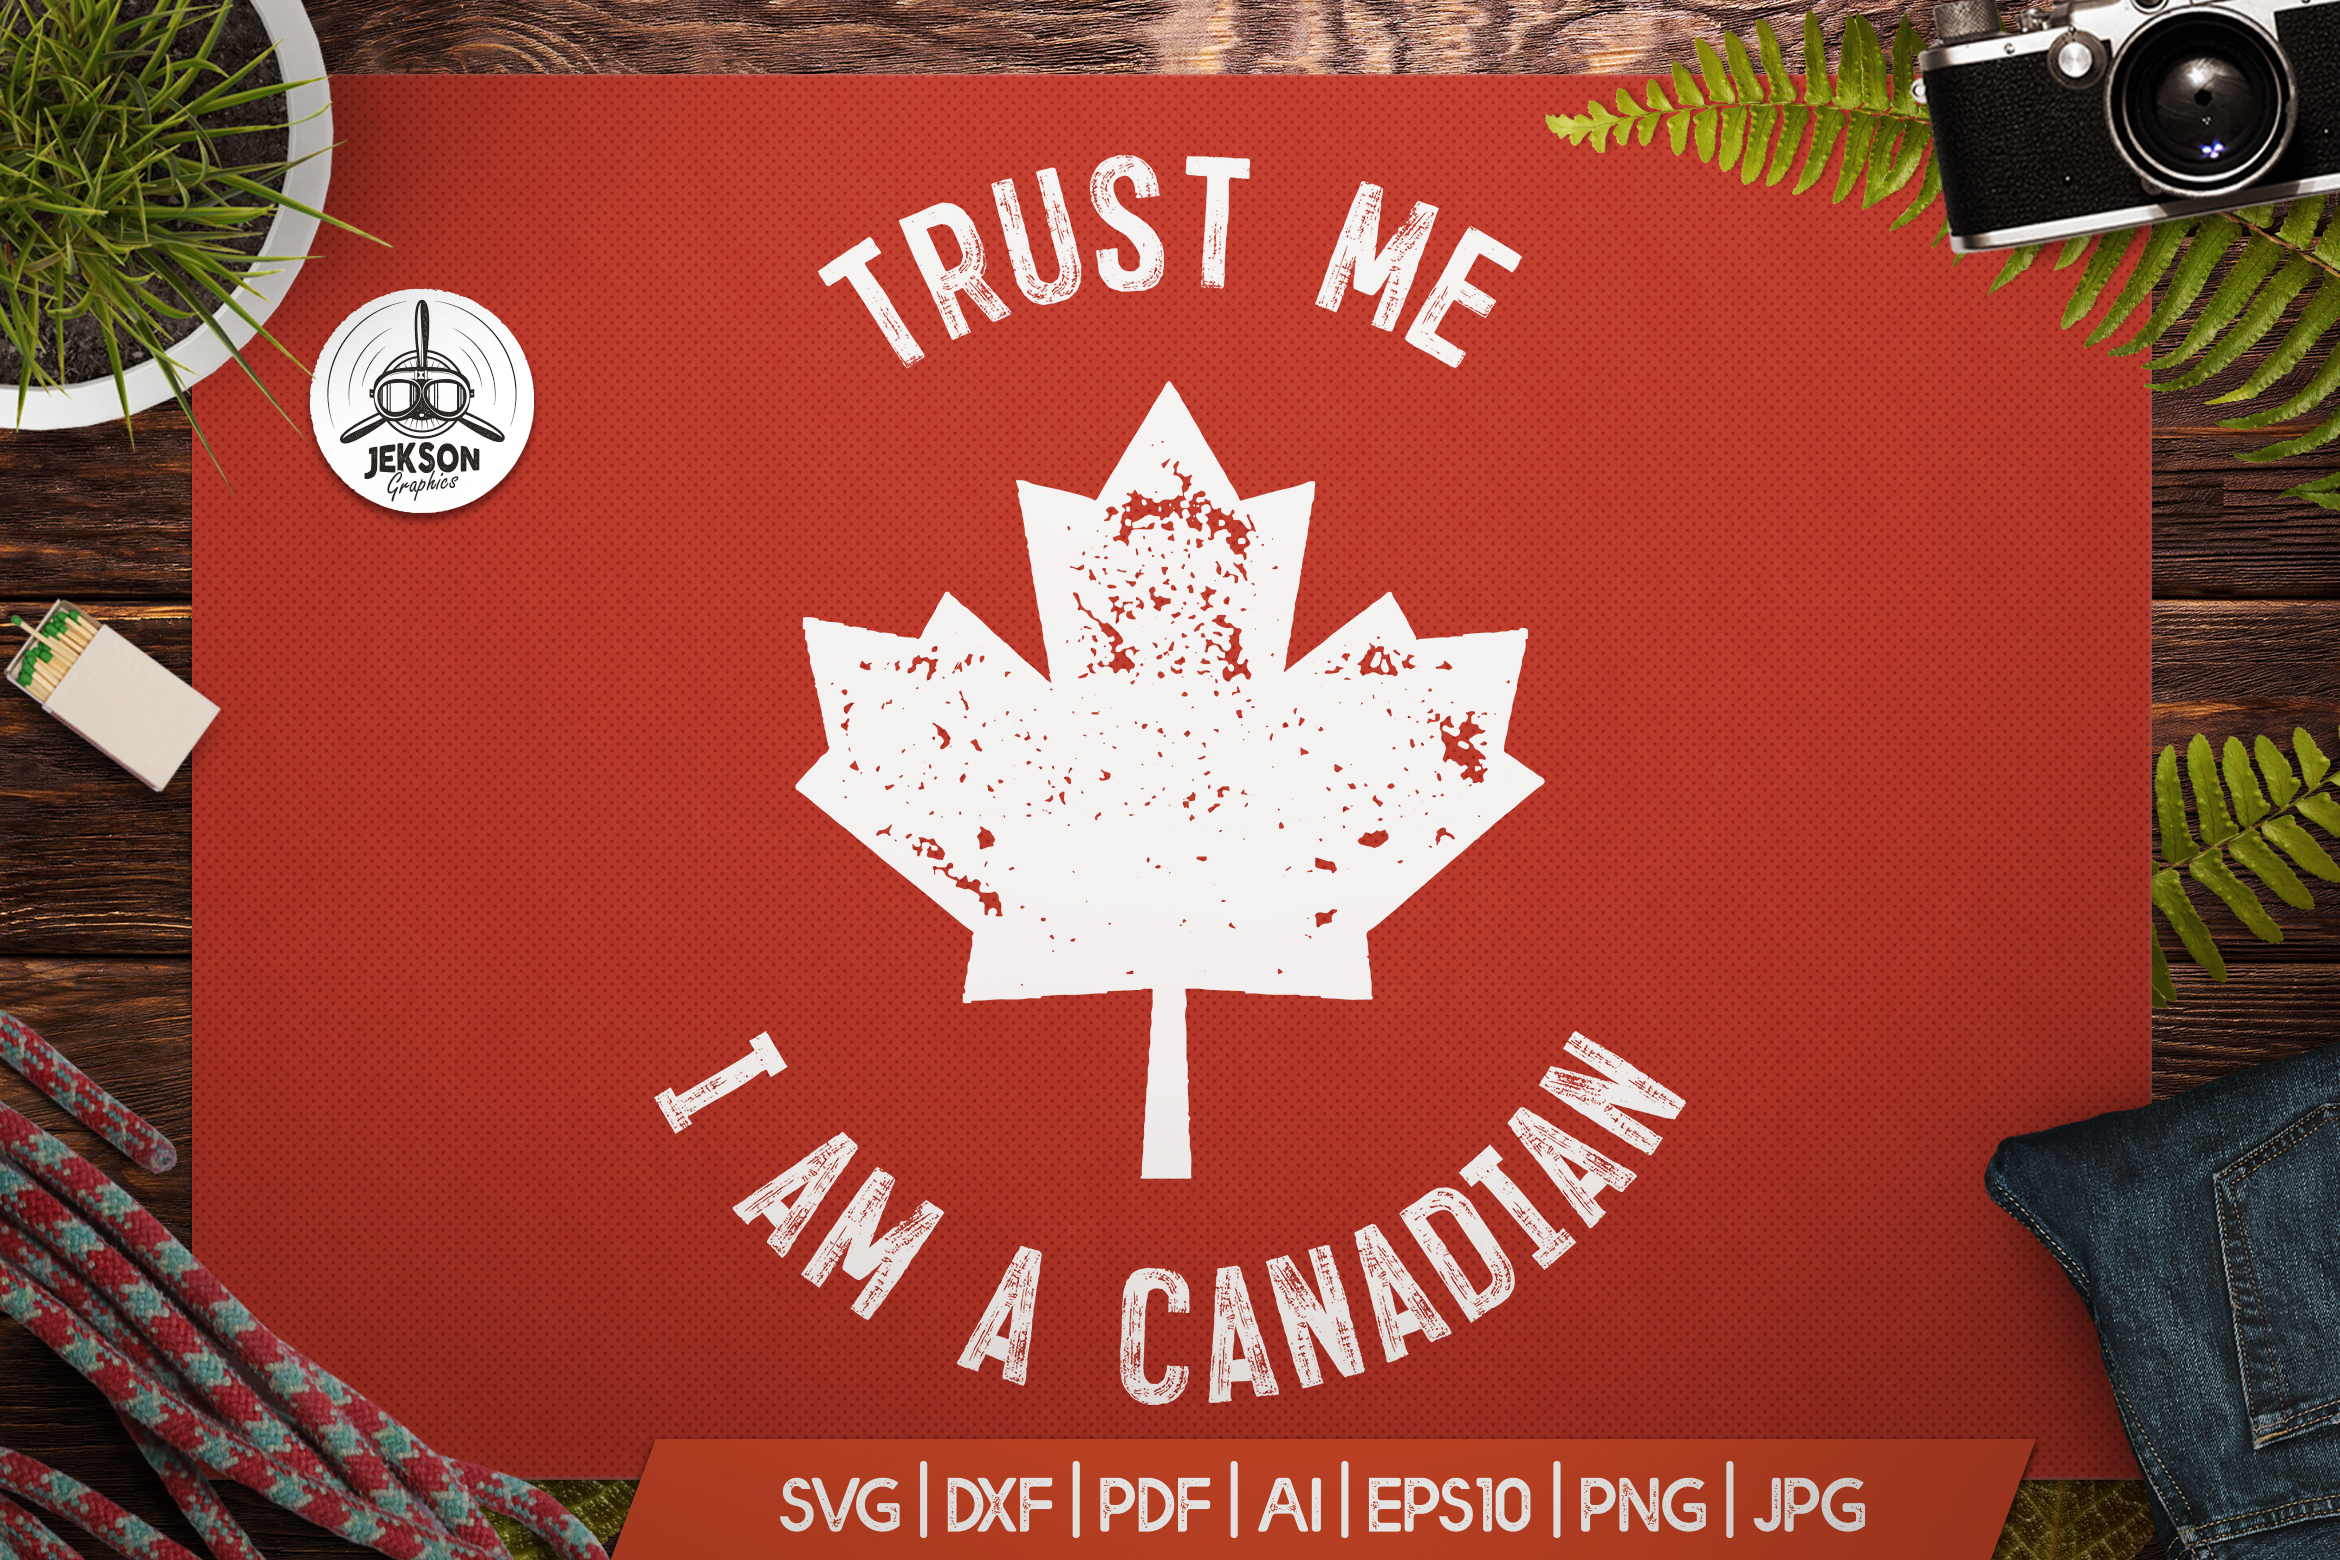 Download Free Trust Me I M Canadian Graphic By Jeksongraphics Creative Fabrica for Cricut Explore, Silhouette and other cutting machines.